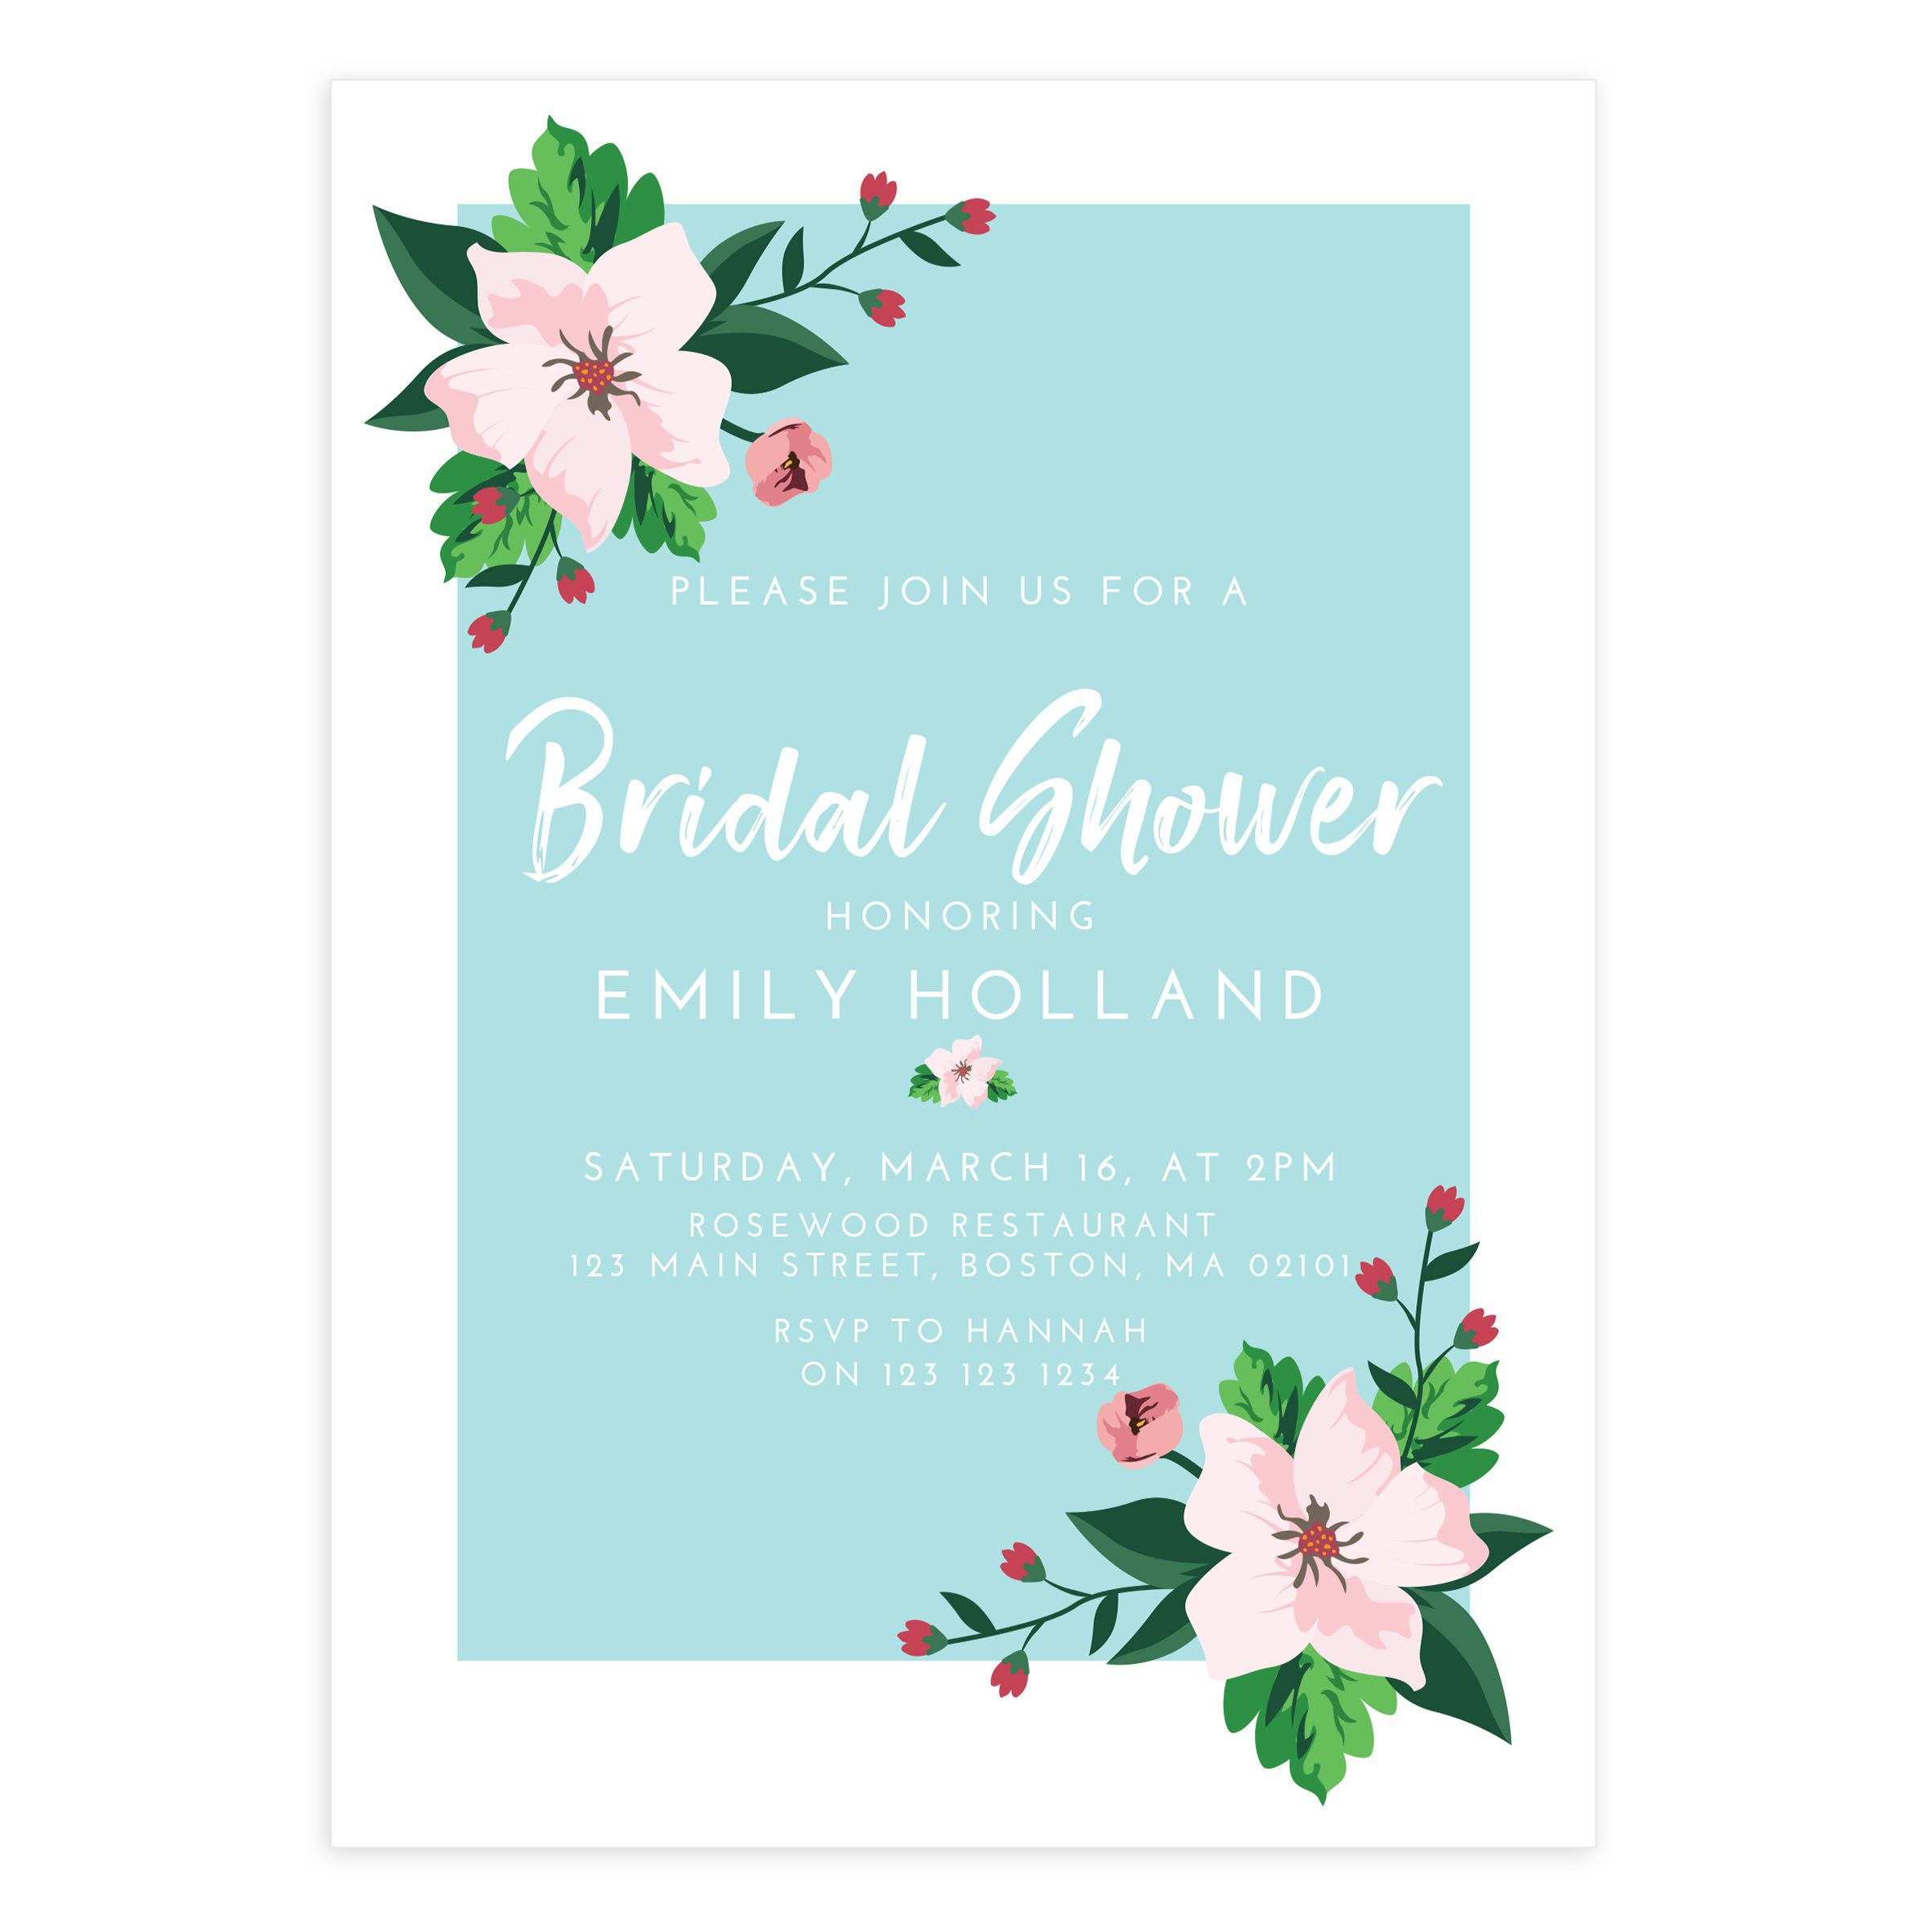 009 Formidable Wedding Shower Invitation Template Sample  Templates Bridal Pinterest Microsoft Word Free ForFull